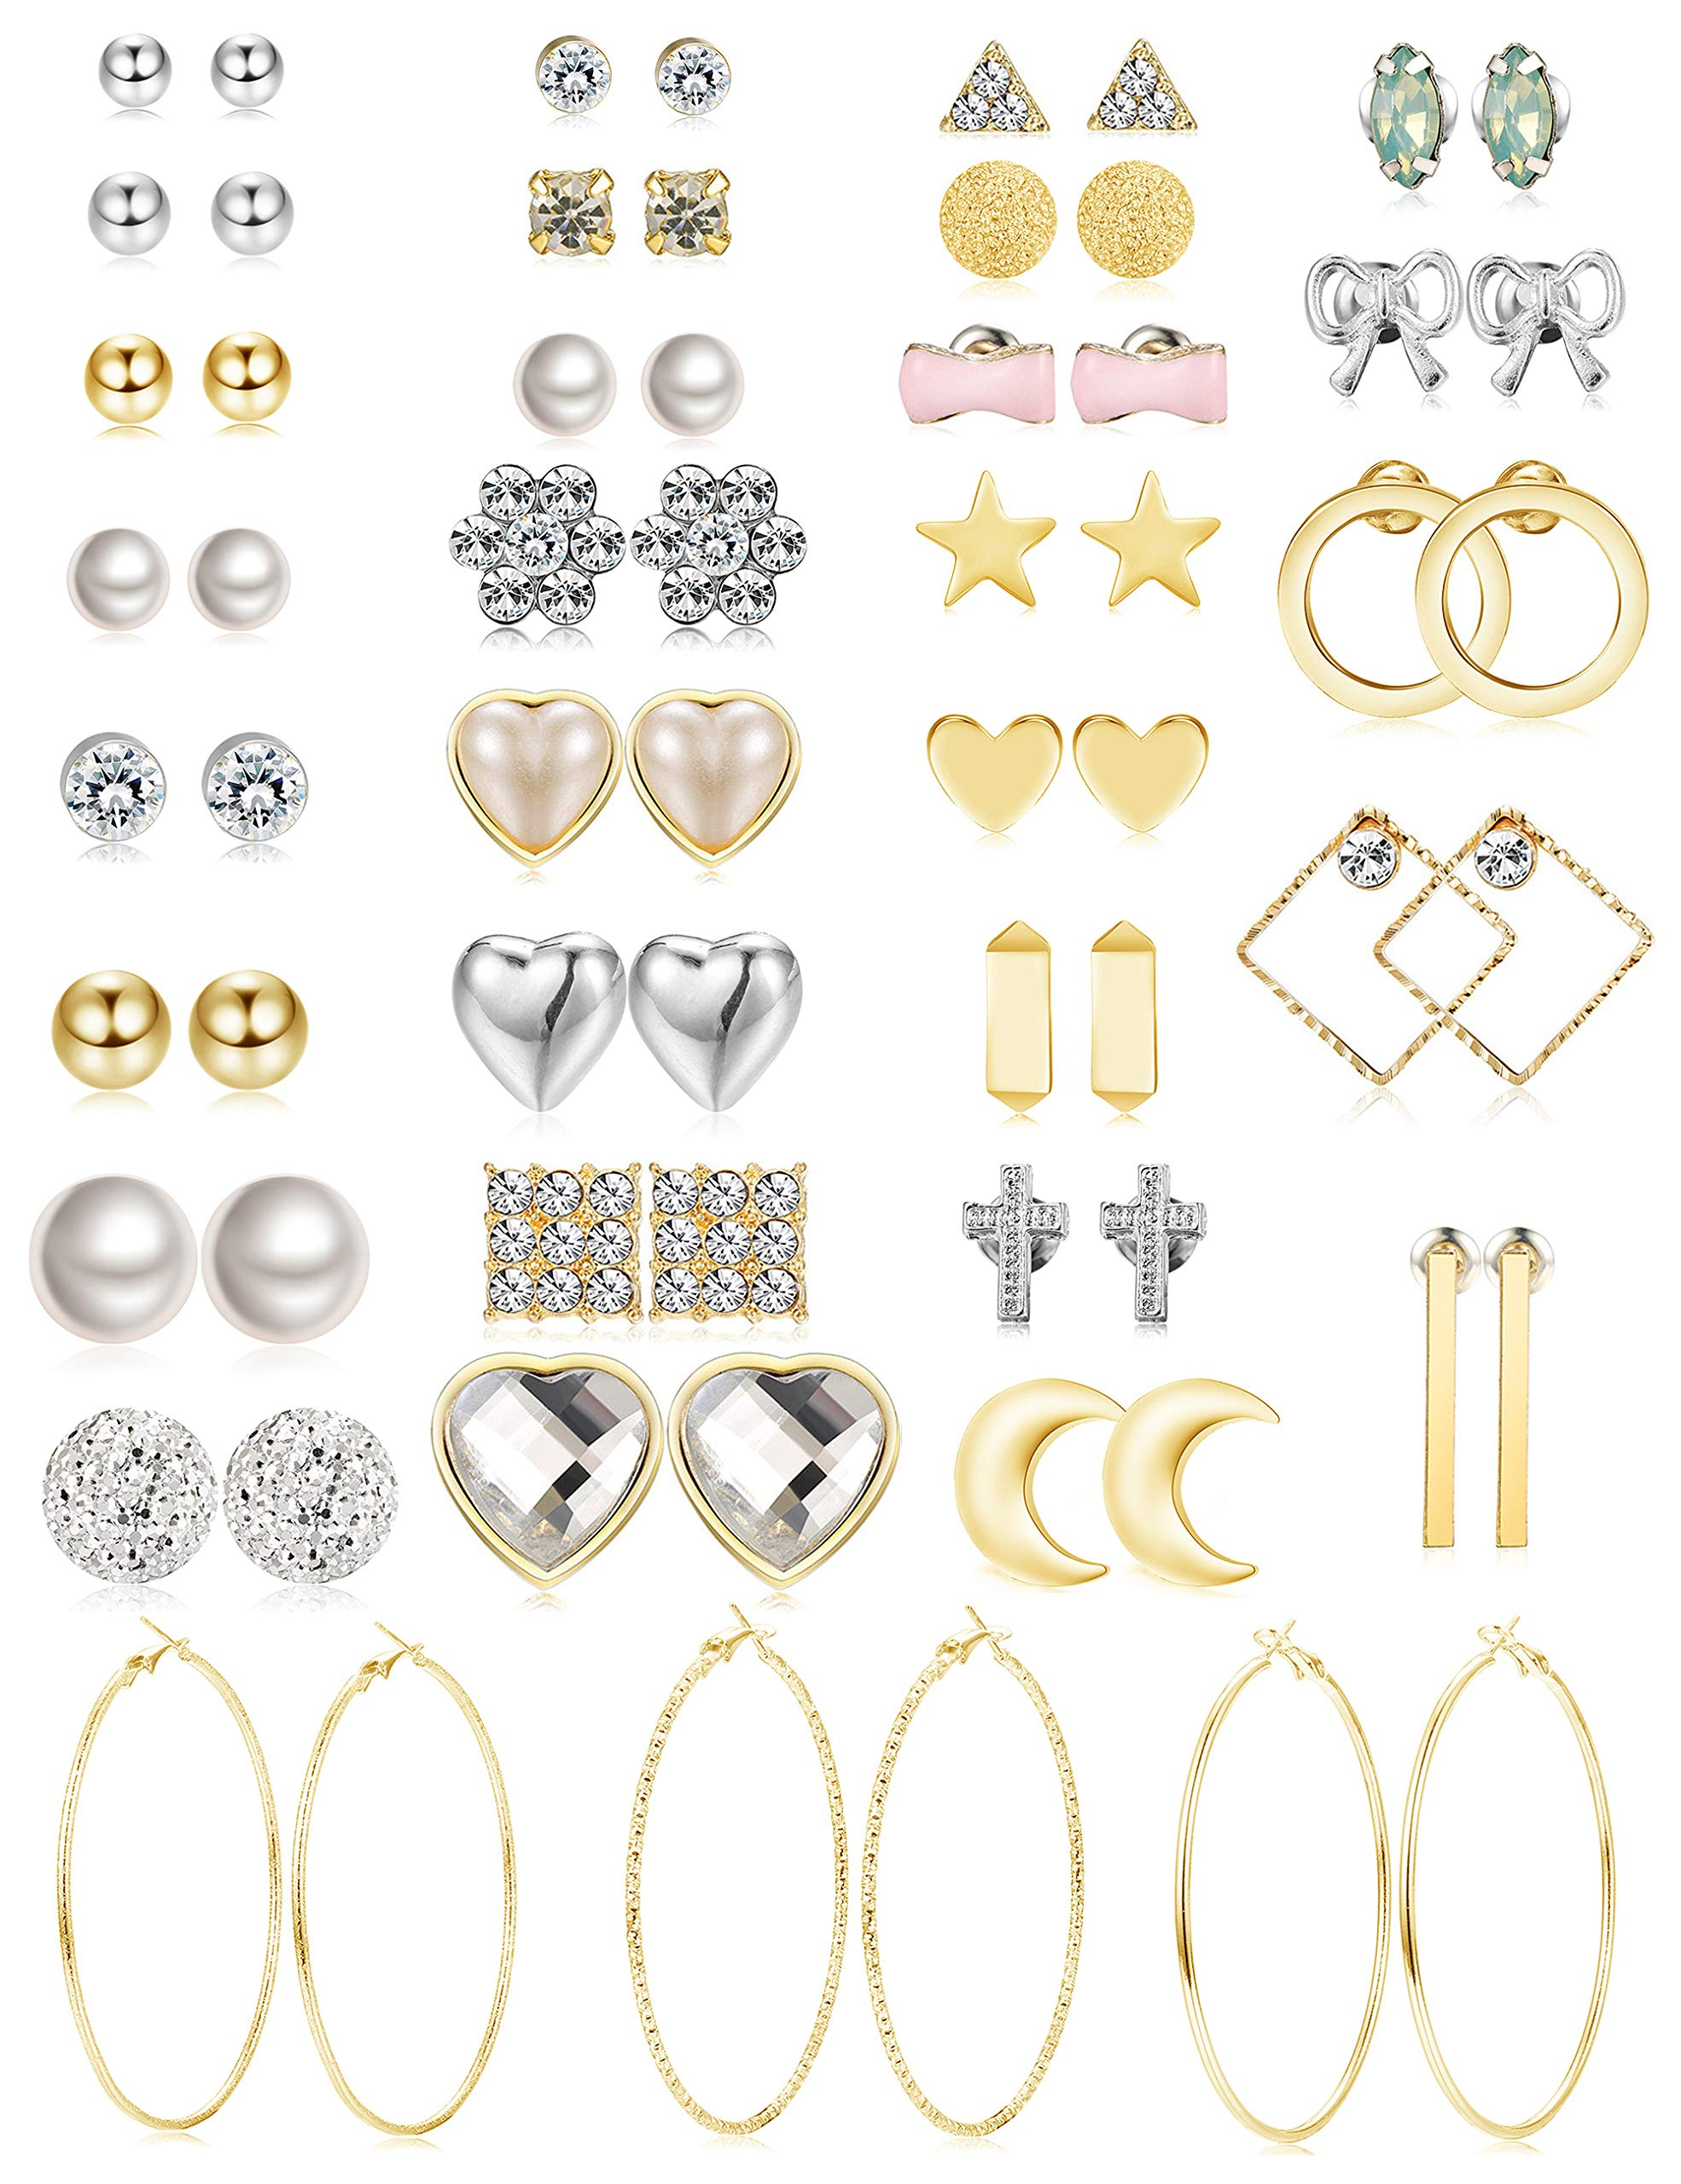 Jstyle 32 Pairs Assorted Multiple Stud Earrings for Women Girls Simple Cute Big Hoop Earrings Set (A: 32pairs) by Jstyle